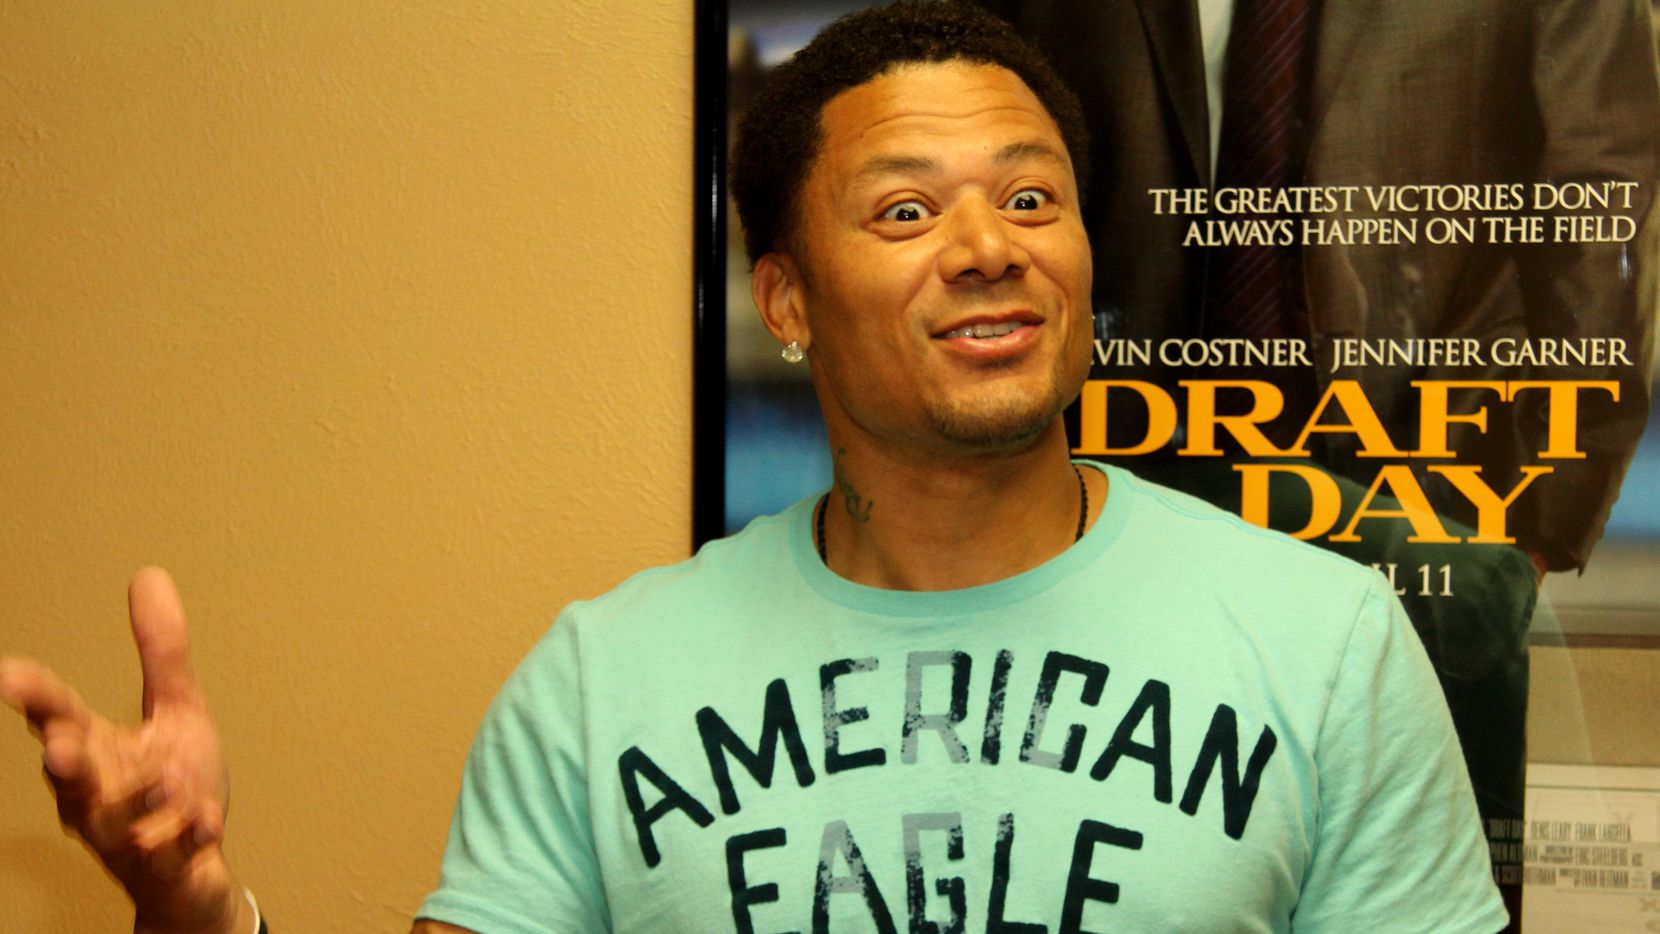 """Former Dallas Cowboys receiver Terry Glenn recalls details of his draft day into the National Football League for members of the local media at a screening of the movie """"Draft Day"""" last month."""